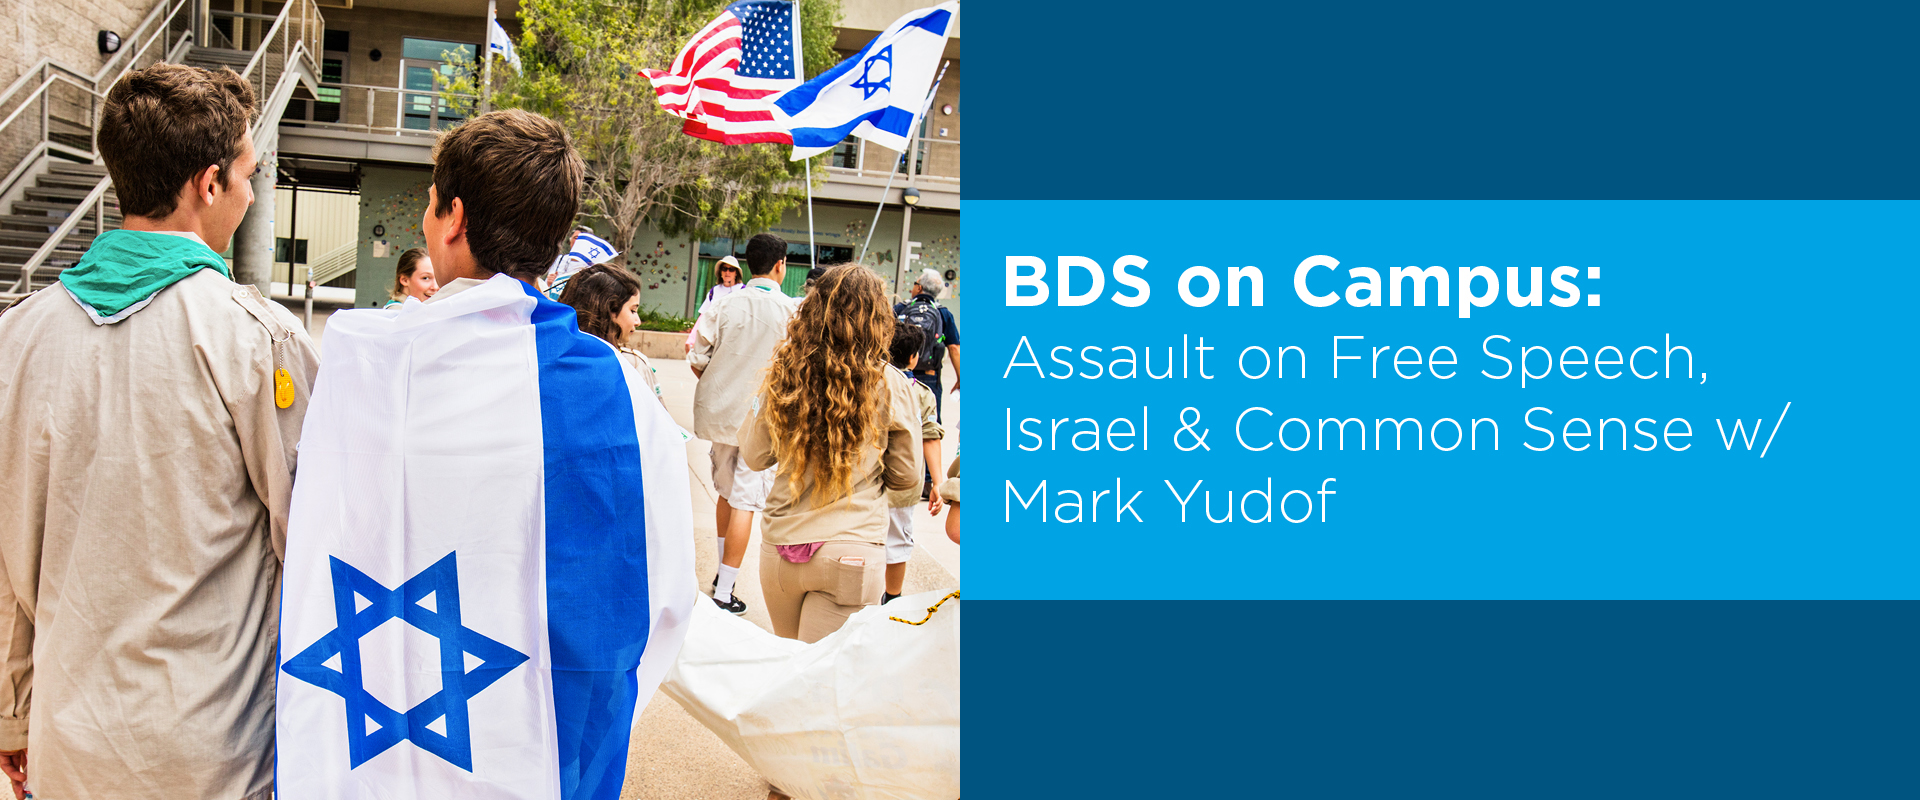 bds-on-campus